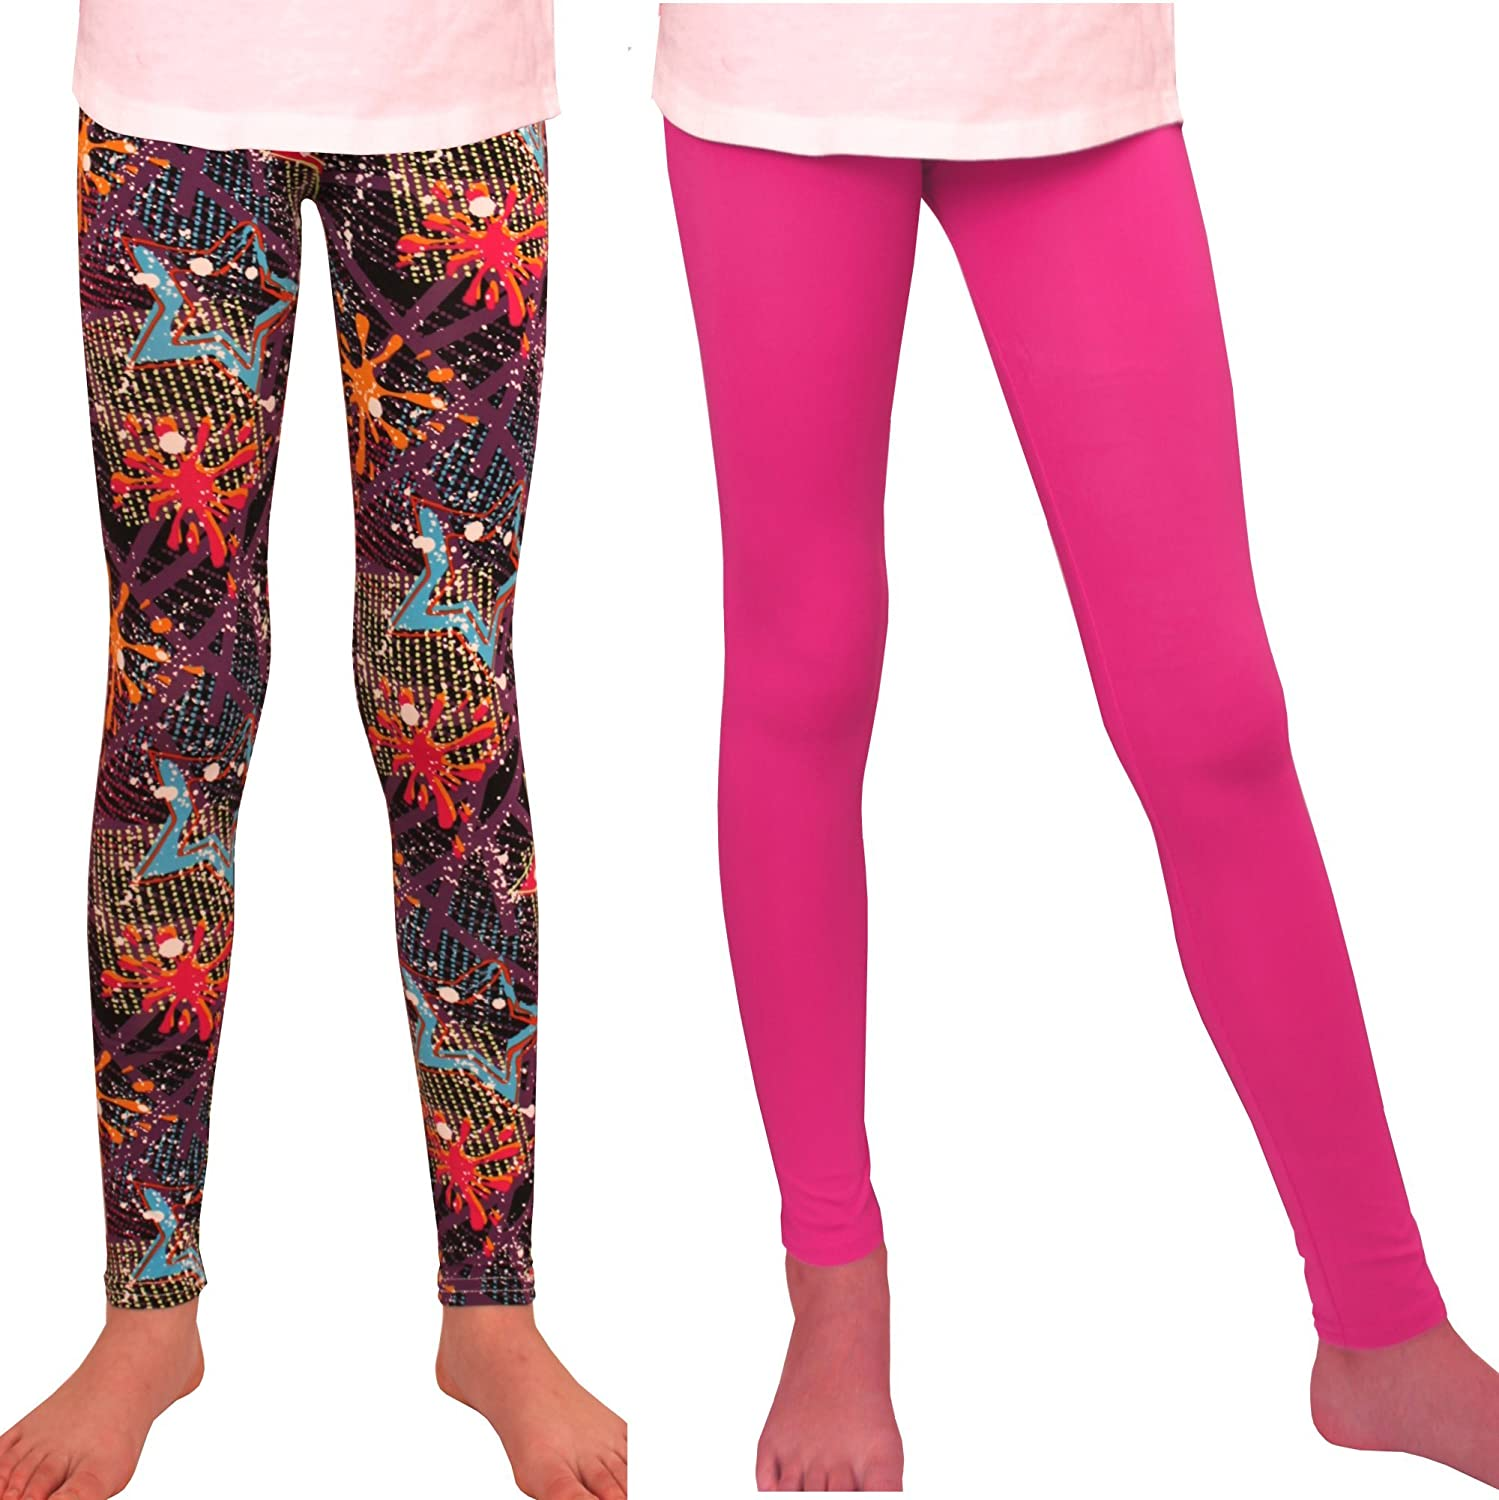 Syleia Girl Leggings 2 Pairs Star /& Solid Pink Great Stretch Age 4-12